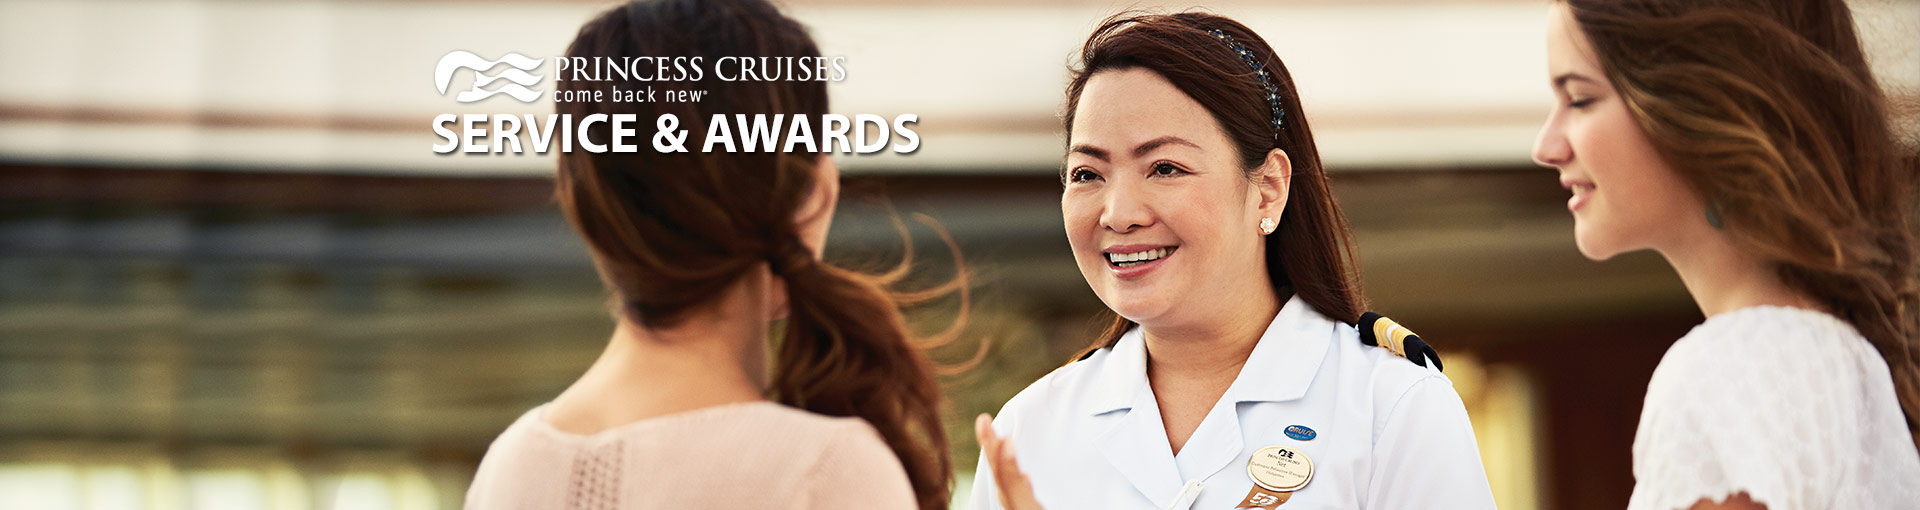 Princess Cruises Service & Awards